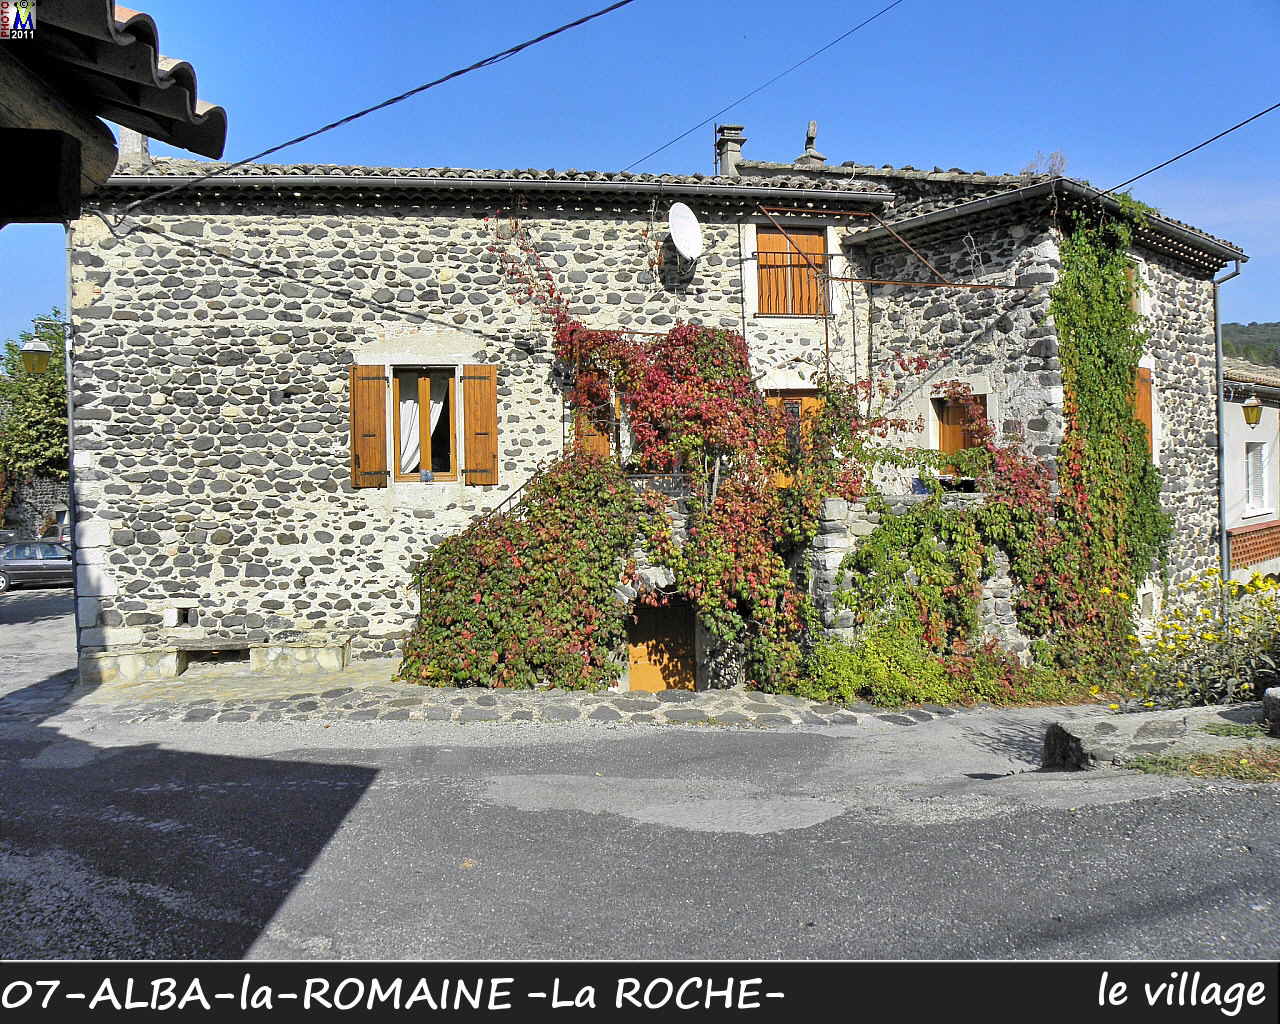 07ALBA-ROMAINEzROCHE_village_146.jpg